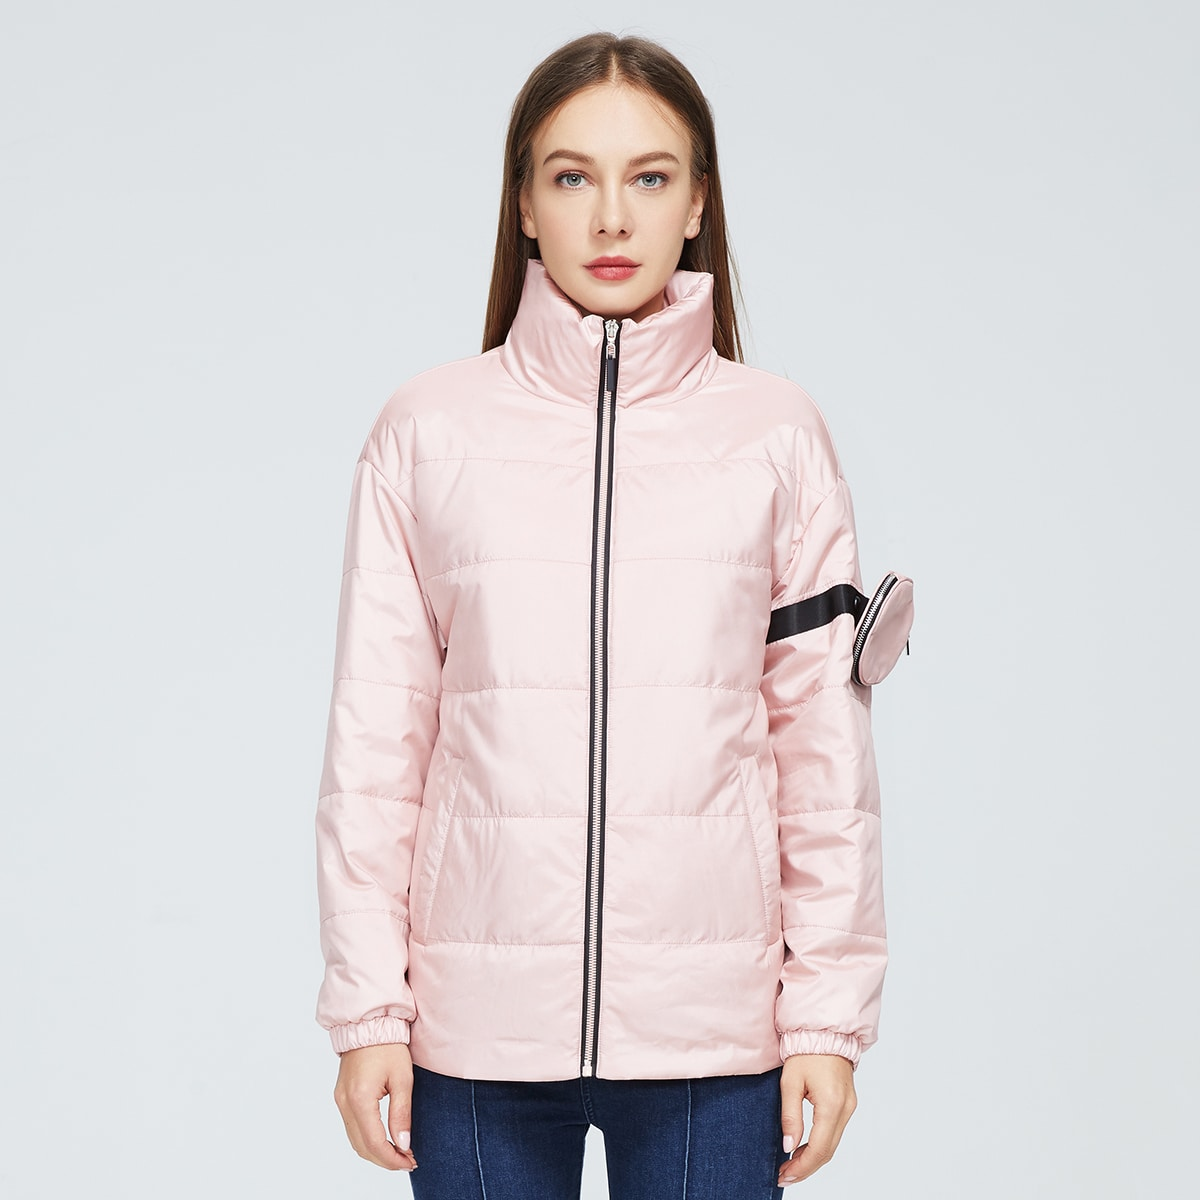 High Neck Zip Up Puffer Jacket With Bag